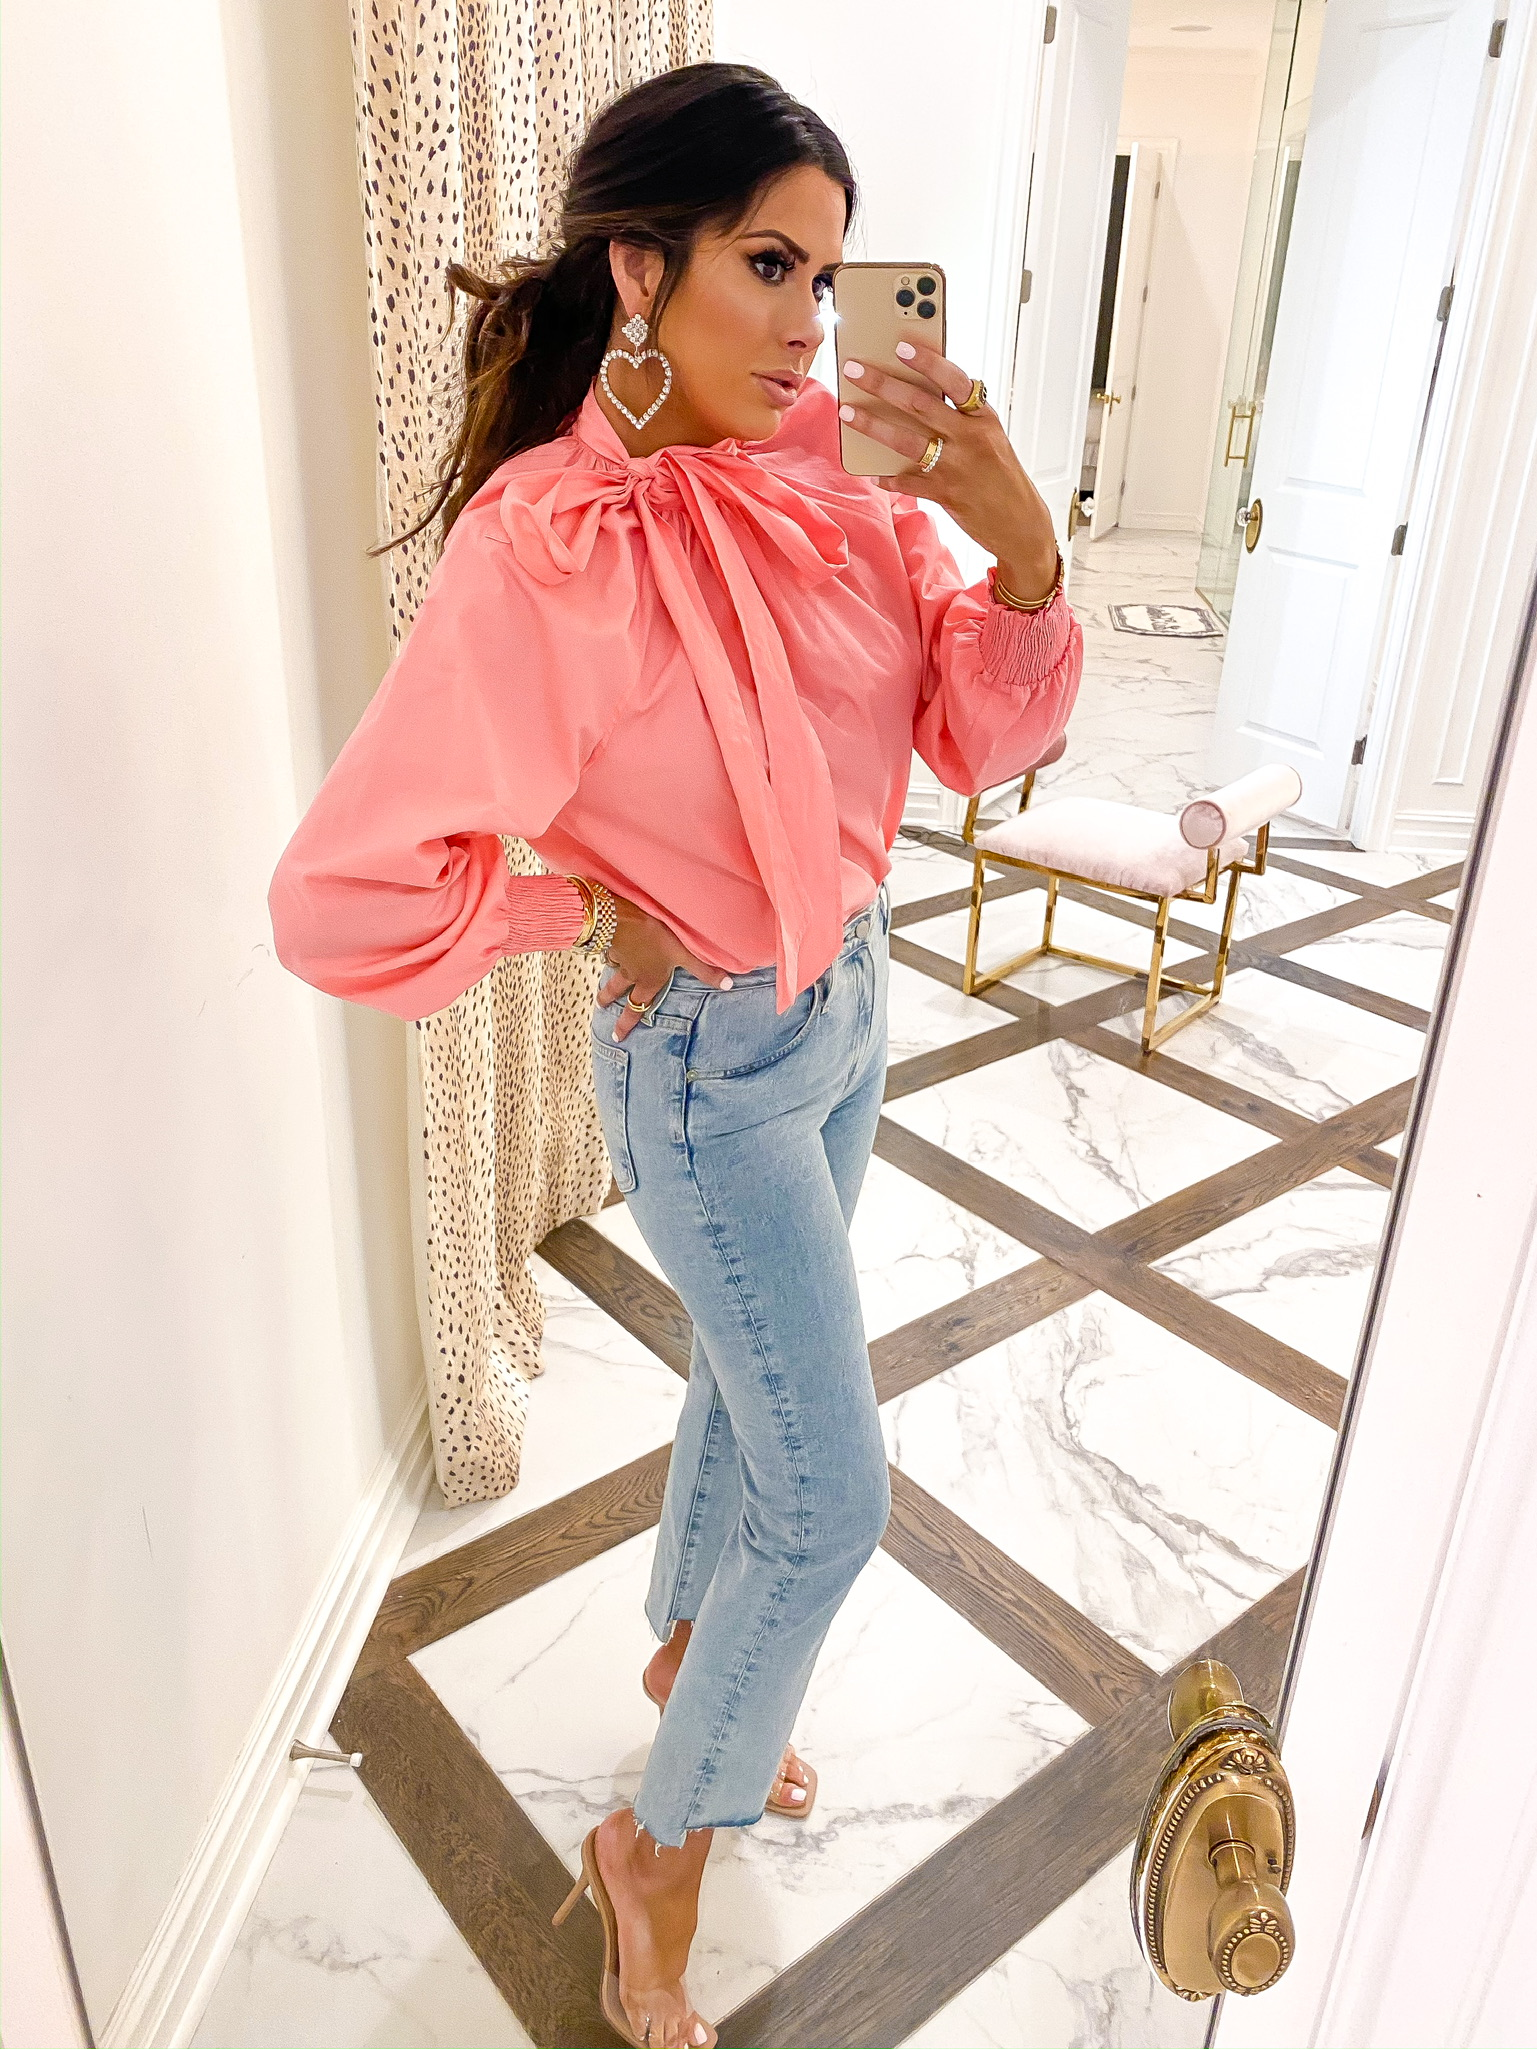 Instagram Fashion by popular US fashion blog, The Sweetest Thing: image of a woman wearing a Nordstrom Topshop Pussybow Poplin Blouse, Nordstrom The Isabelle High Waist Step Hem Ankle Jeans AG, ASOS True Decadence rhinestone crystal heart drop earrings, and Steve Madden SIGNAL CLEAR heels.